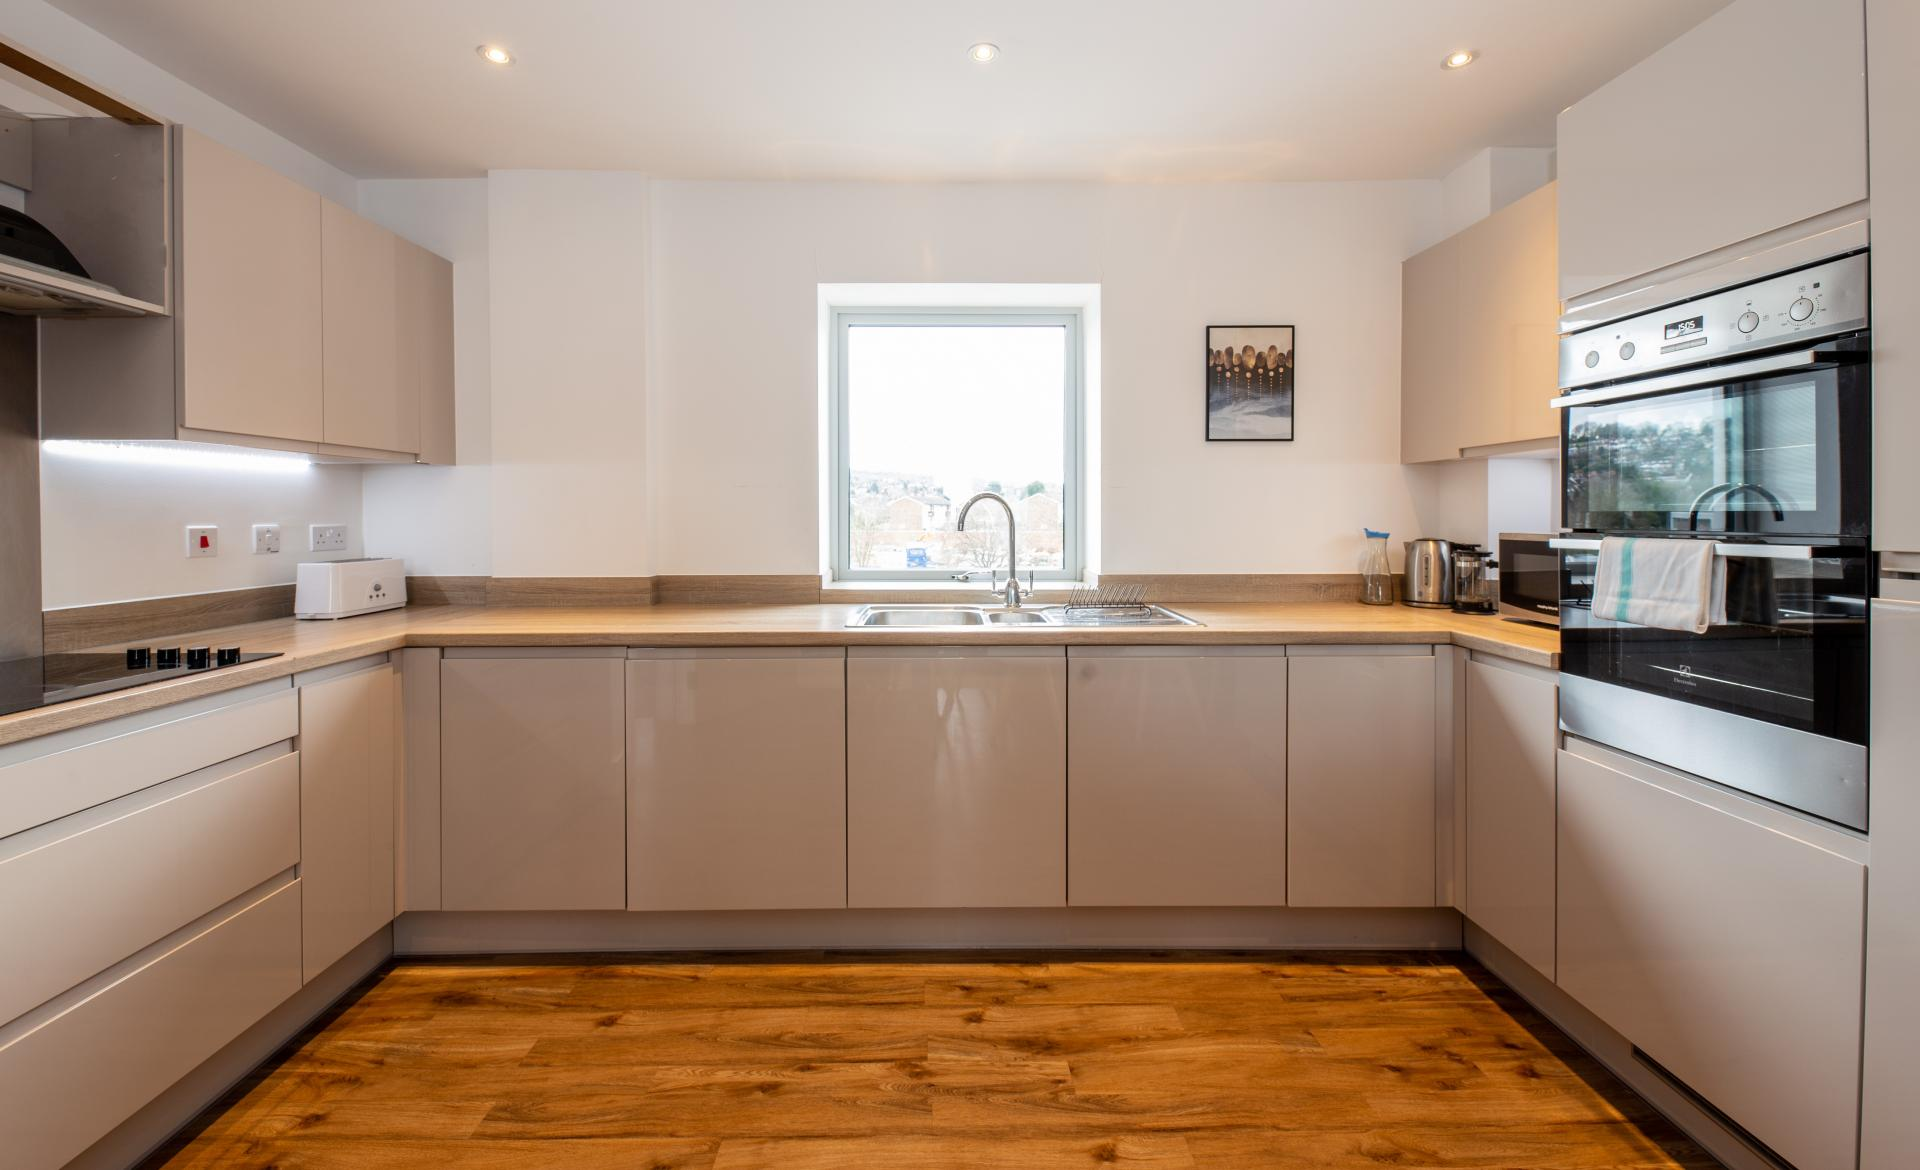 Oven at Austen House, Centre, Guildford - Citybase Apartments